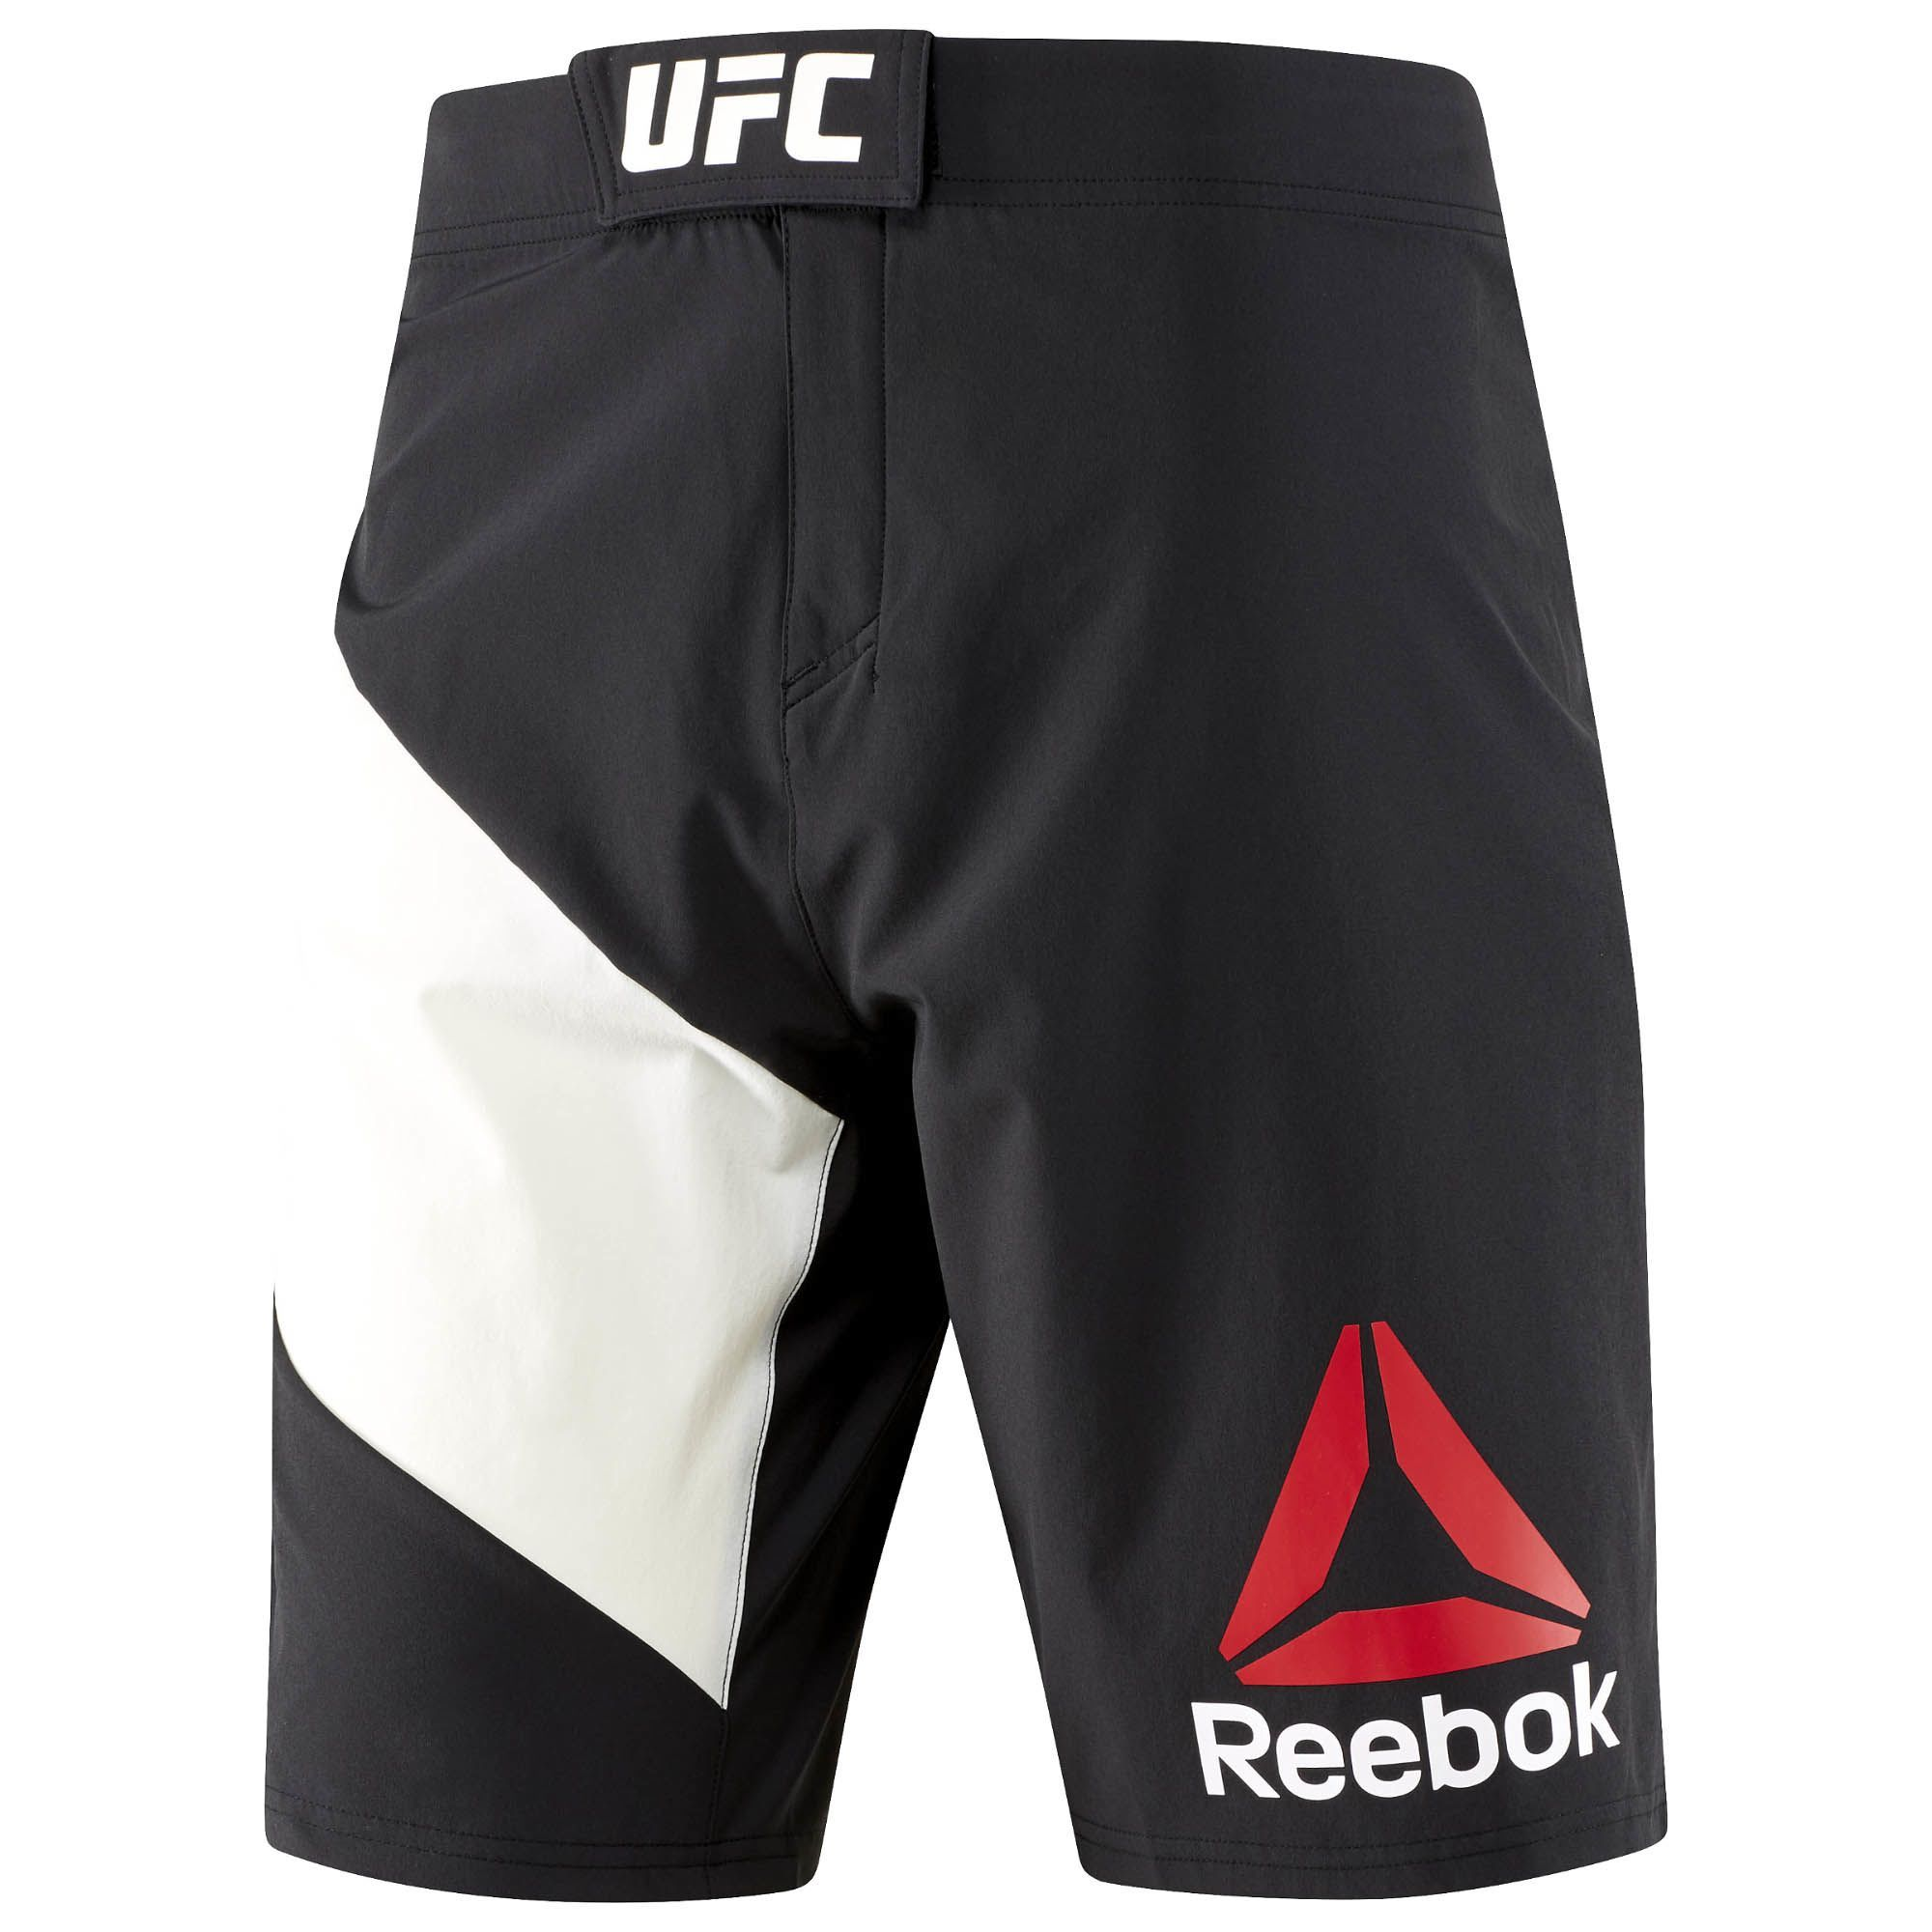 Reebok Ufc Fight Kit Octagon Short Mens Workout Clothes Ufc Clothing Mens Shorts Outfits